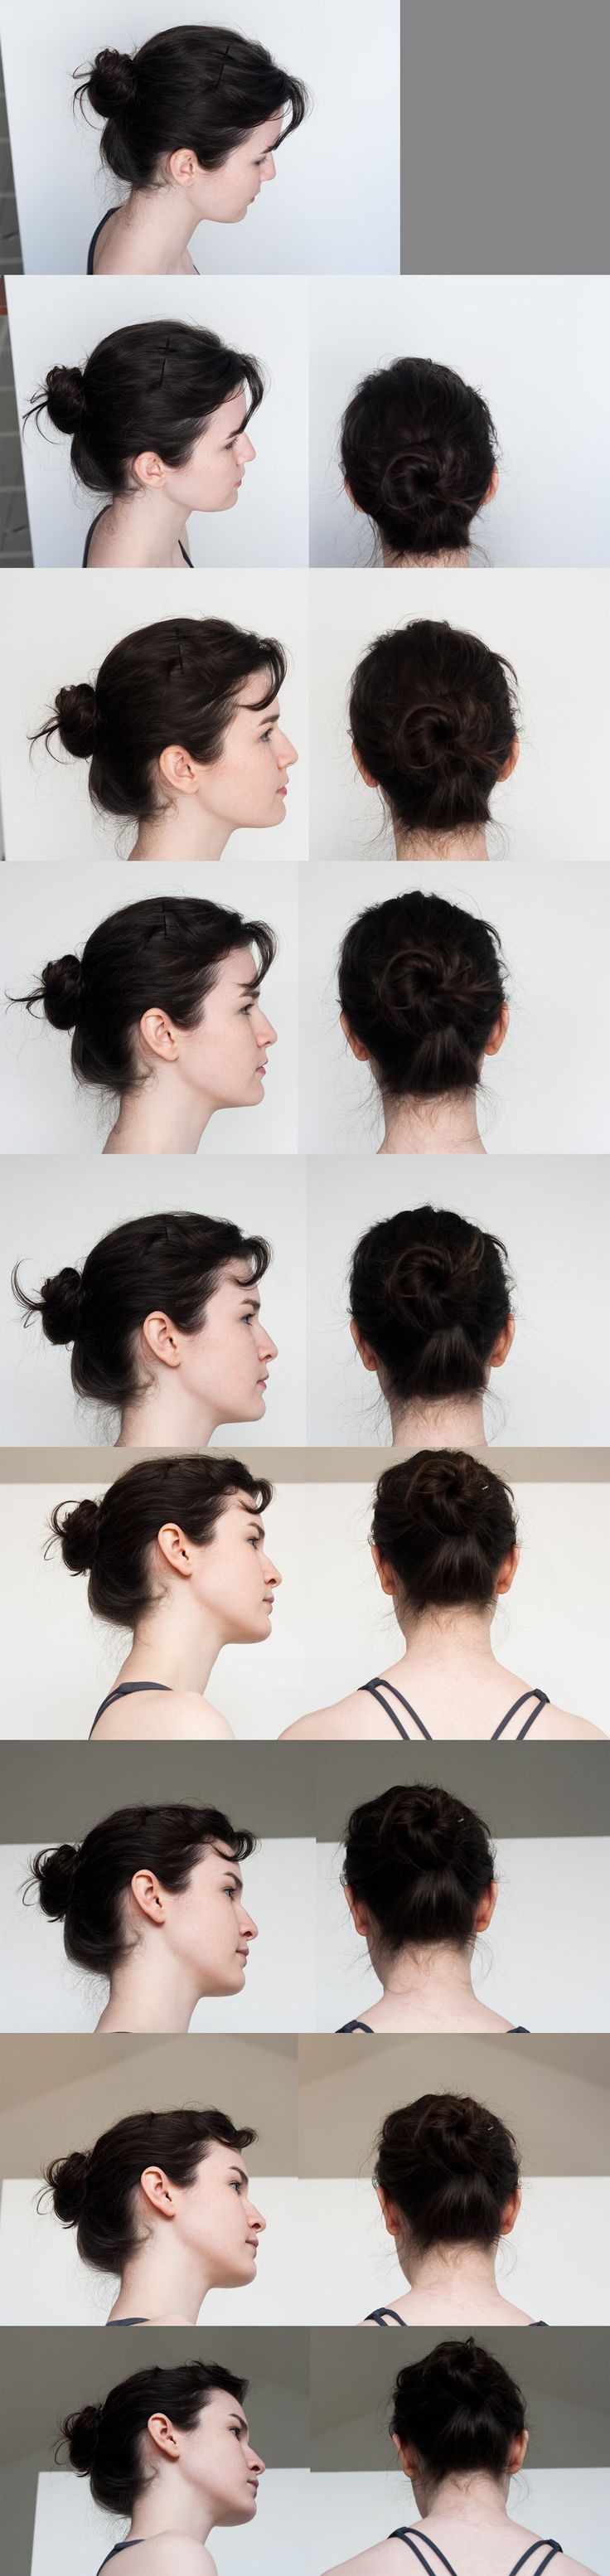 Head Turnaround - Top to Bottom Profile by *Kxhara on deviantART